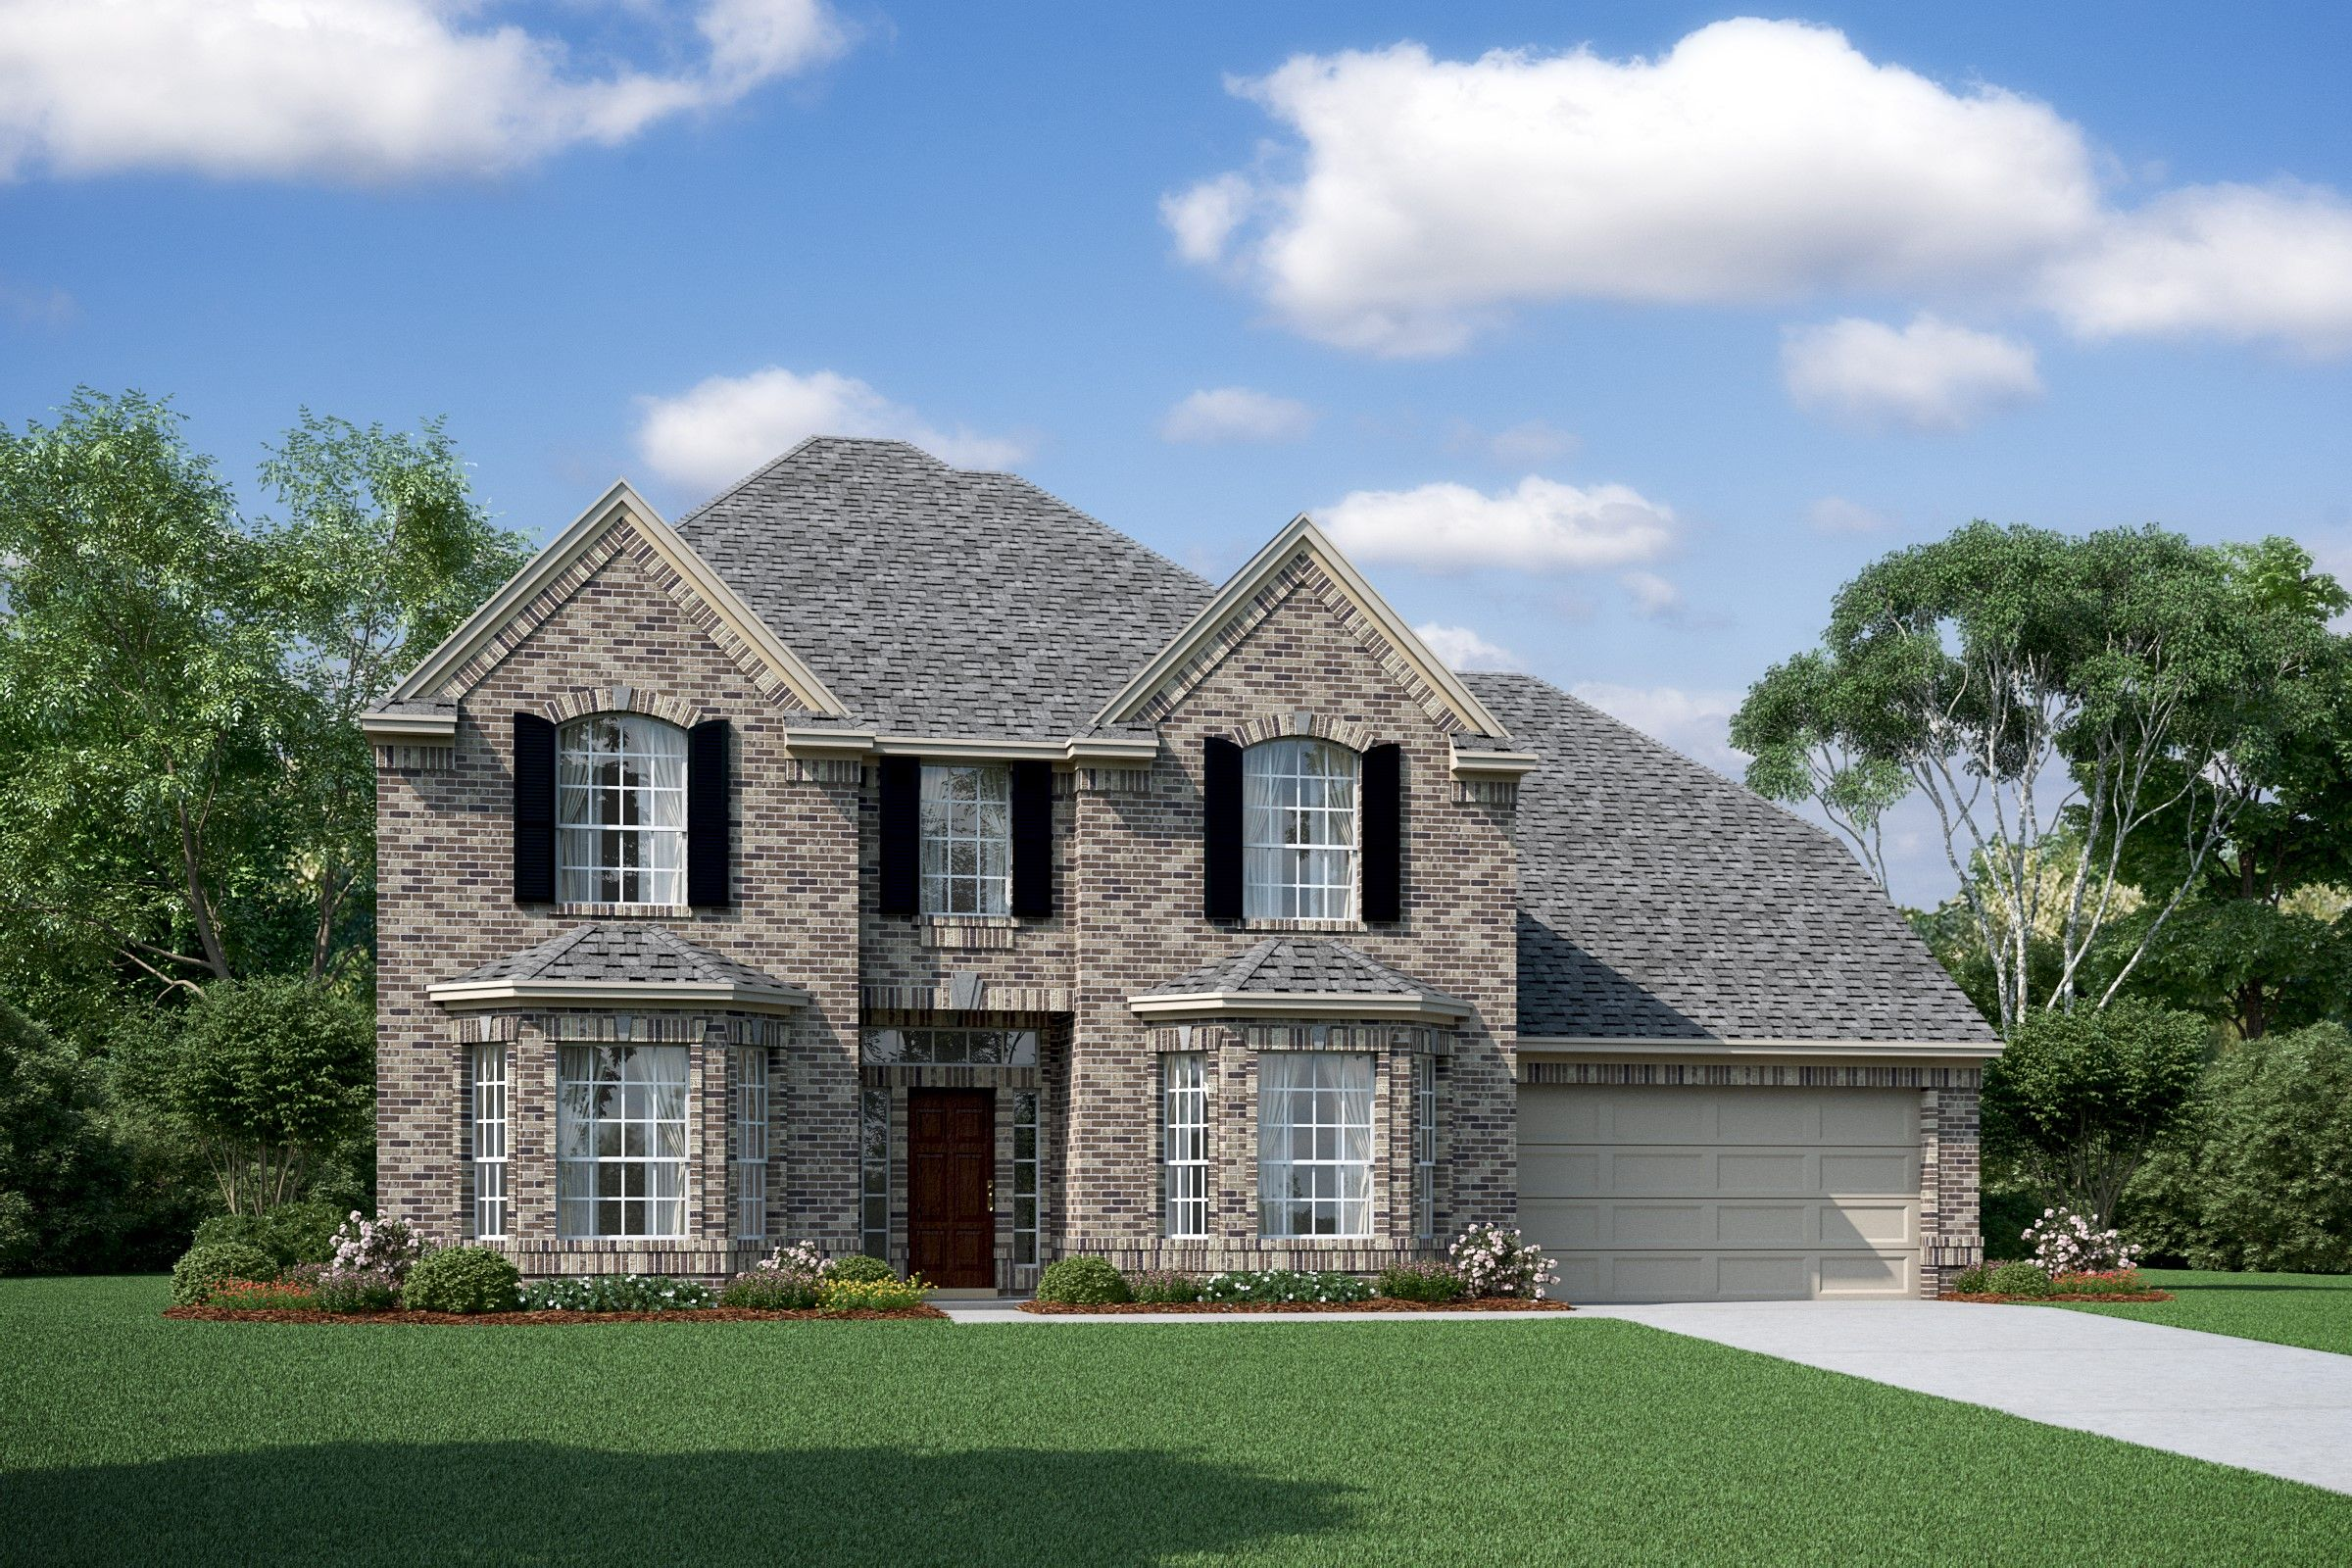 Single Family for Sale at Thunder Bay - Jonathan Mccollum Park Rd & Thunder Bay Beach City, Texas 77523 United States